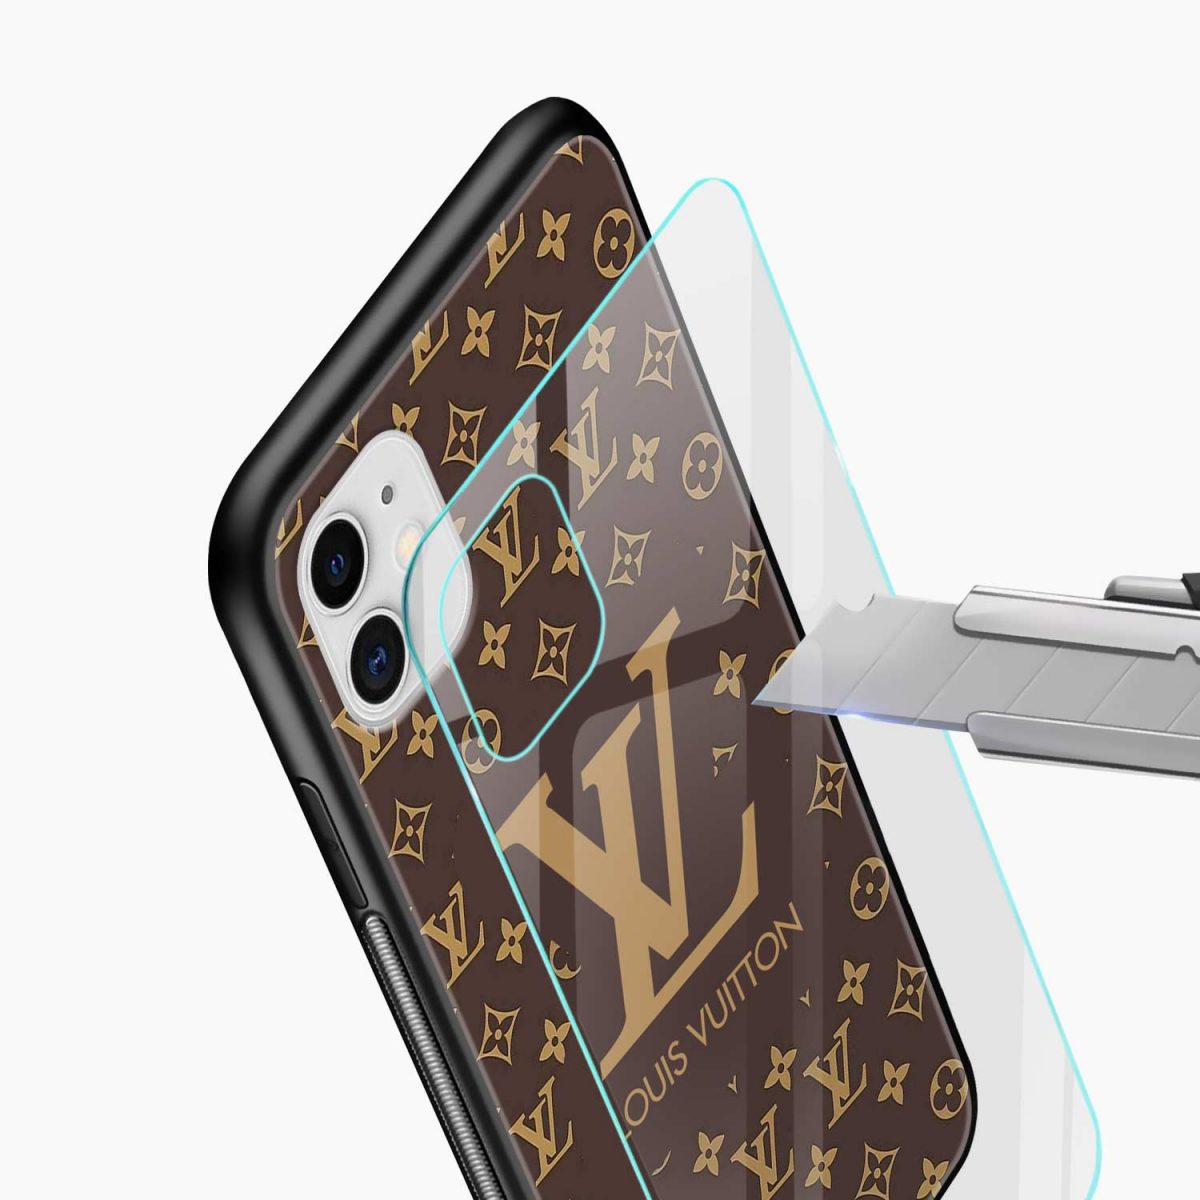 louis vuitton iphone back cover glass view